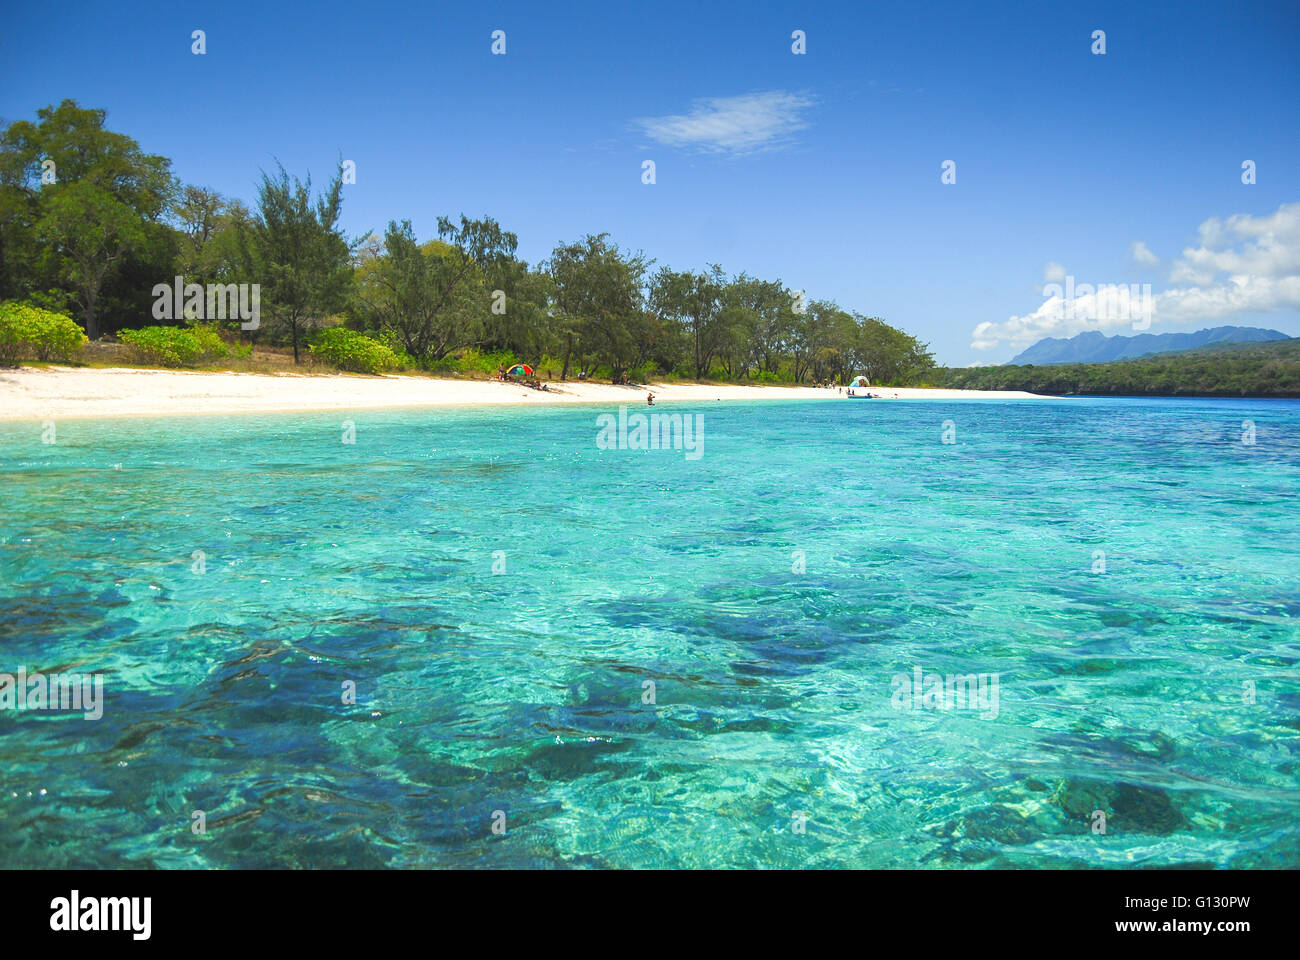 tropical beaches on jaco island in east timor stock photo: 103943361